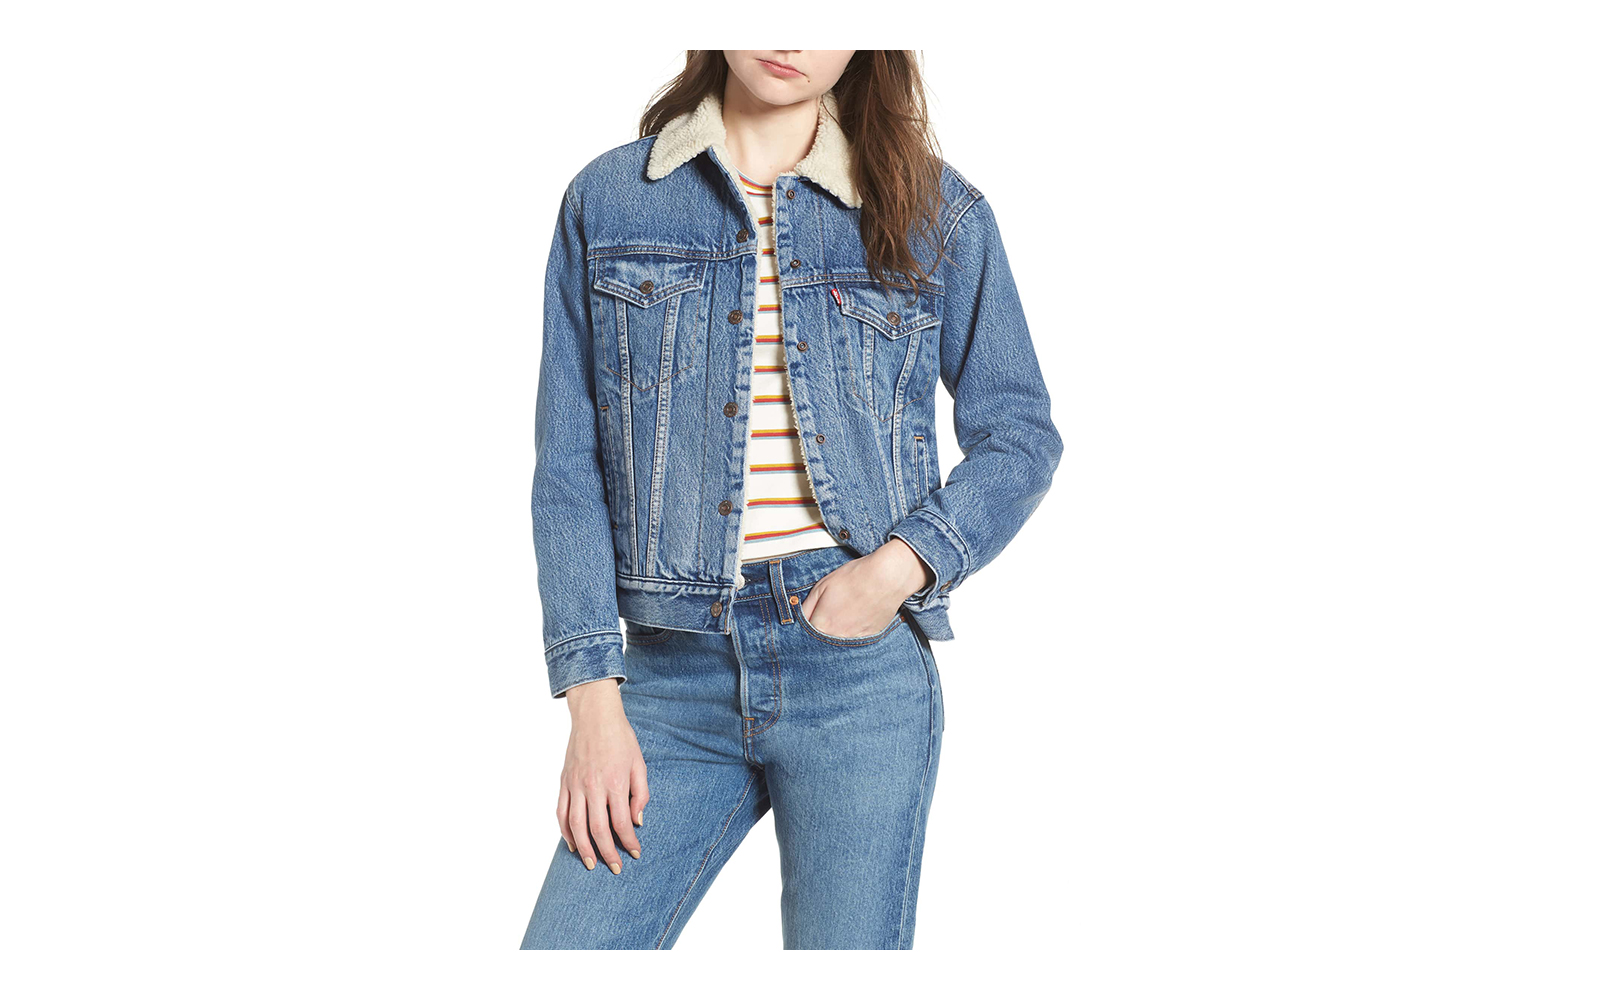 e489e4a731cd The Best Denim Jackets for Women